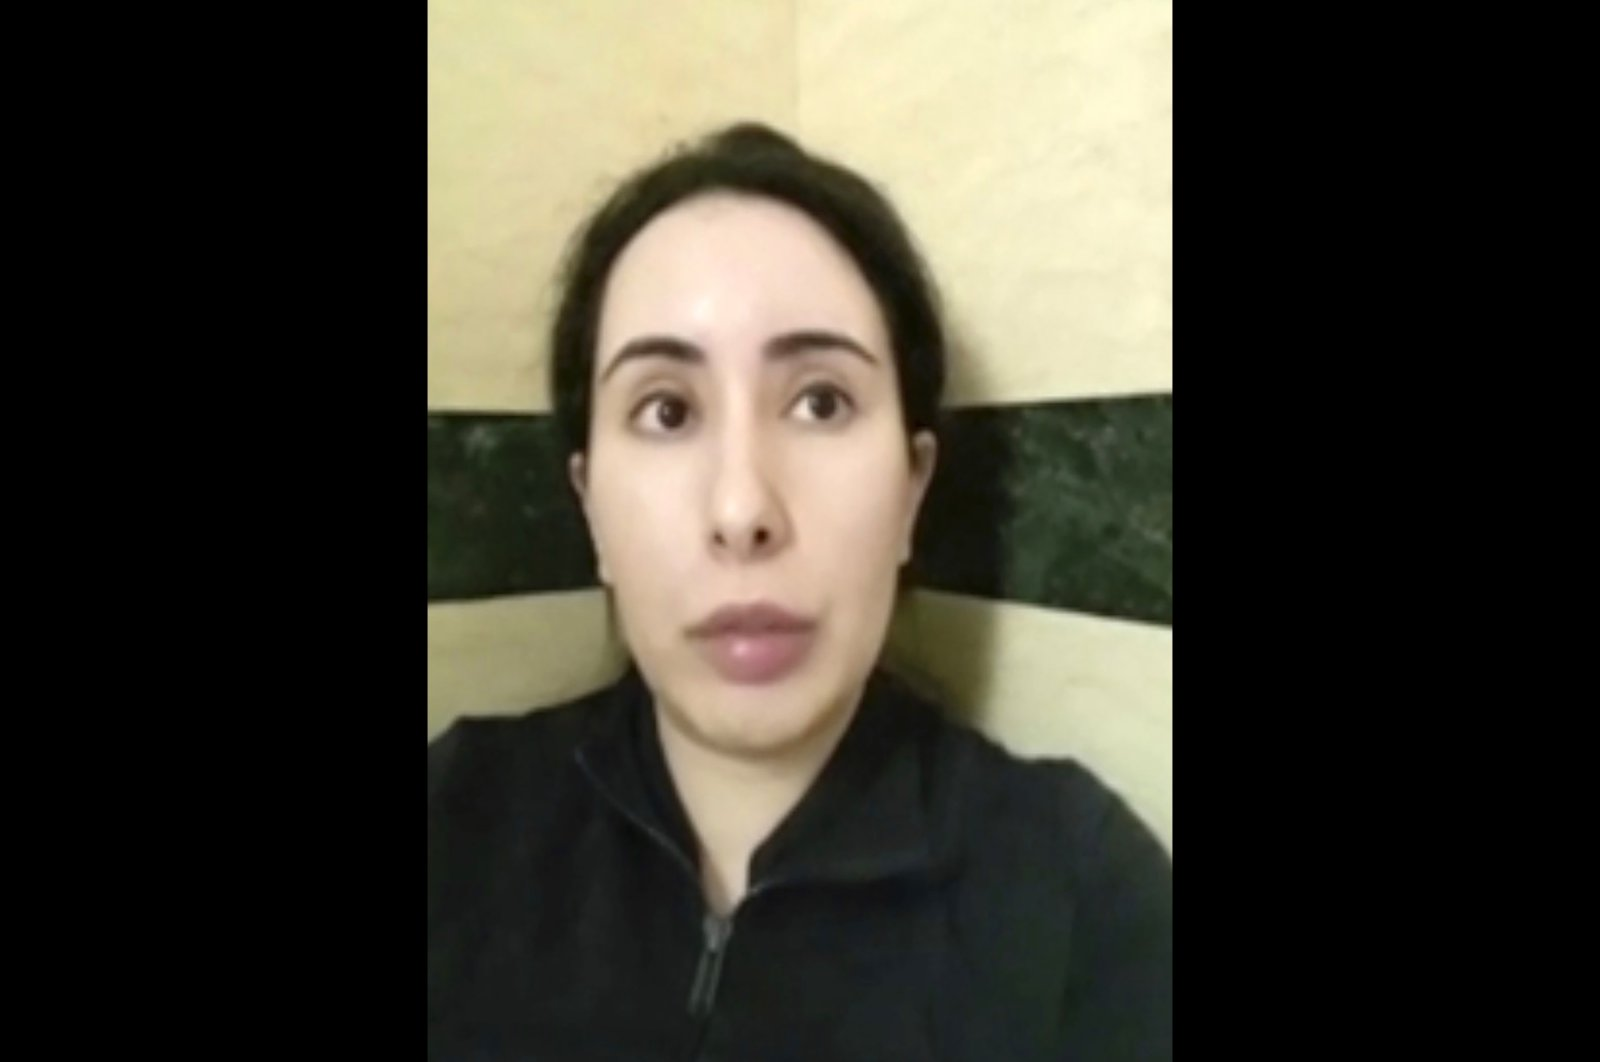 Sheikha Latifa bin Mohammed Al Maktoum speaks into a mobile phone camera in this undated image taken from a video recorded at an unknown location, Feb. 17, 2021. (AP Photo)